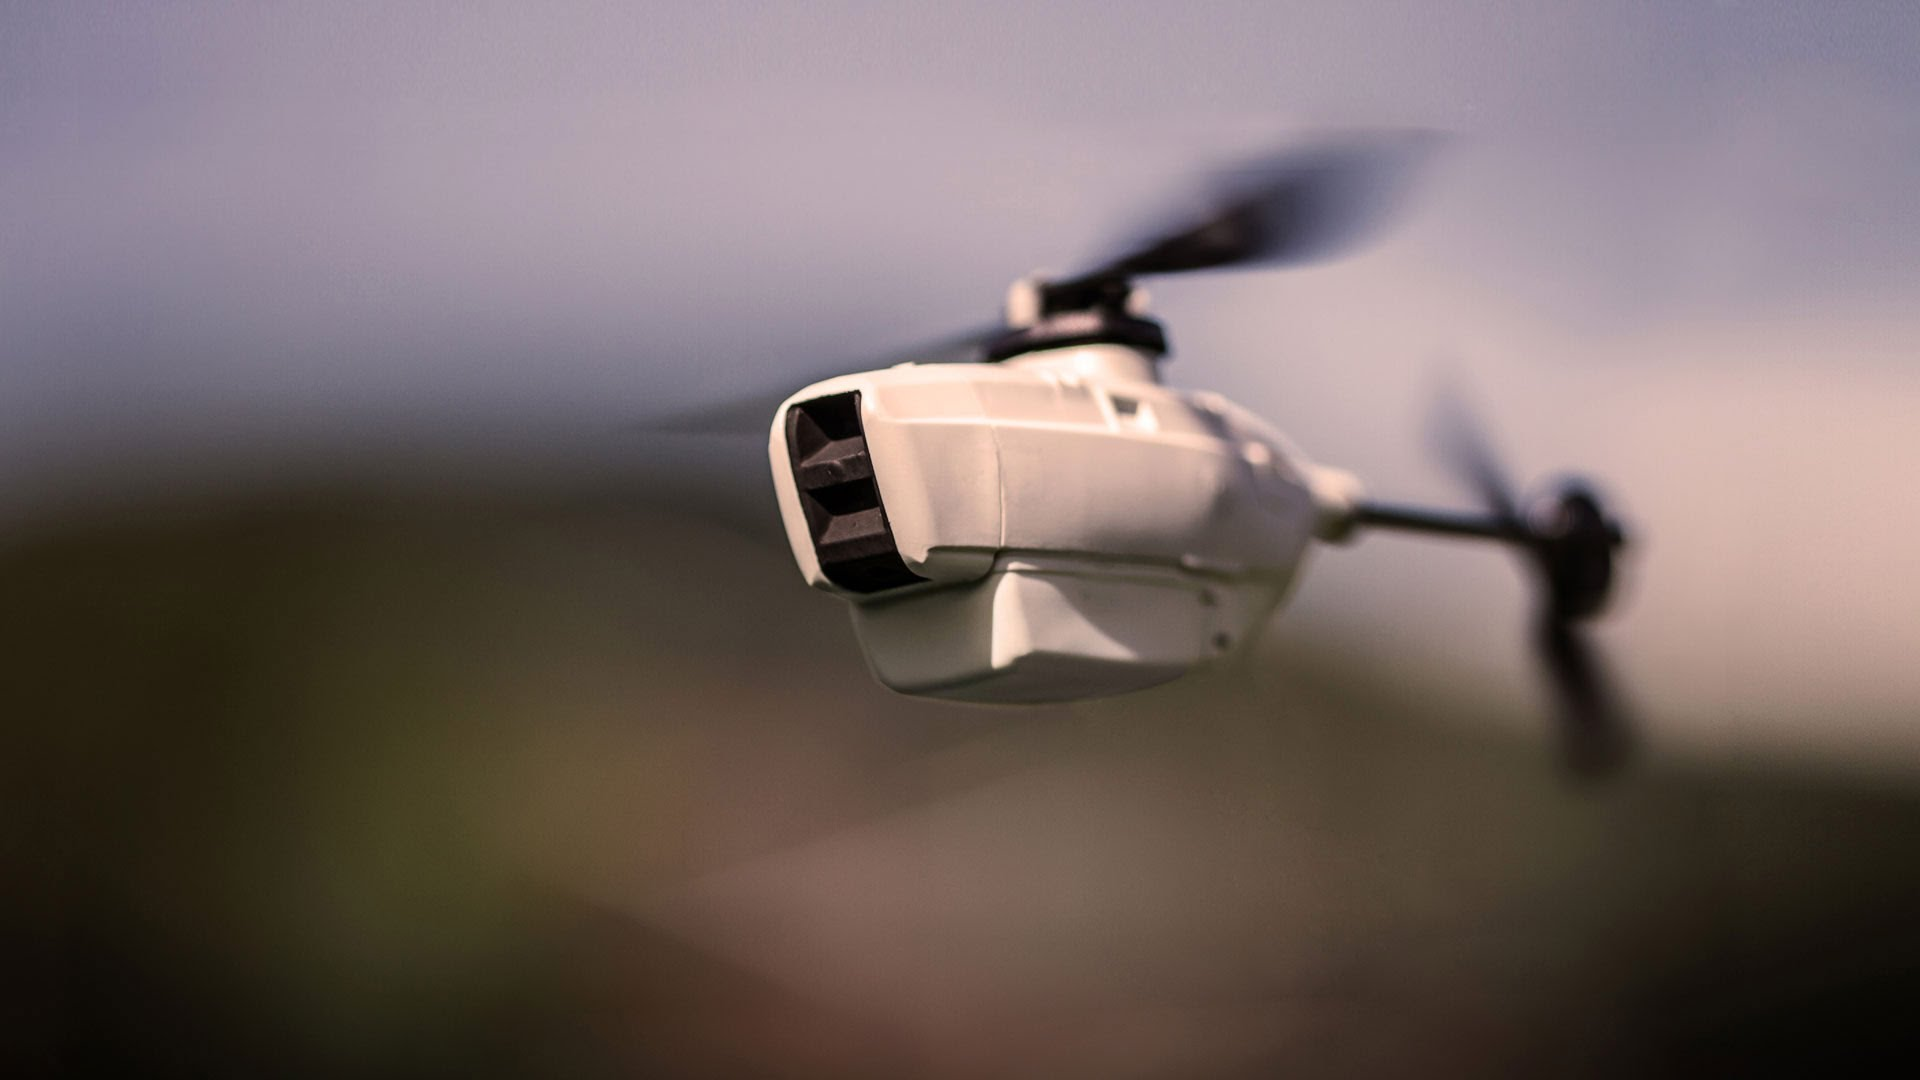 US Army's Pocket-sized Drone